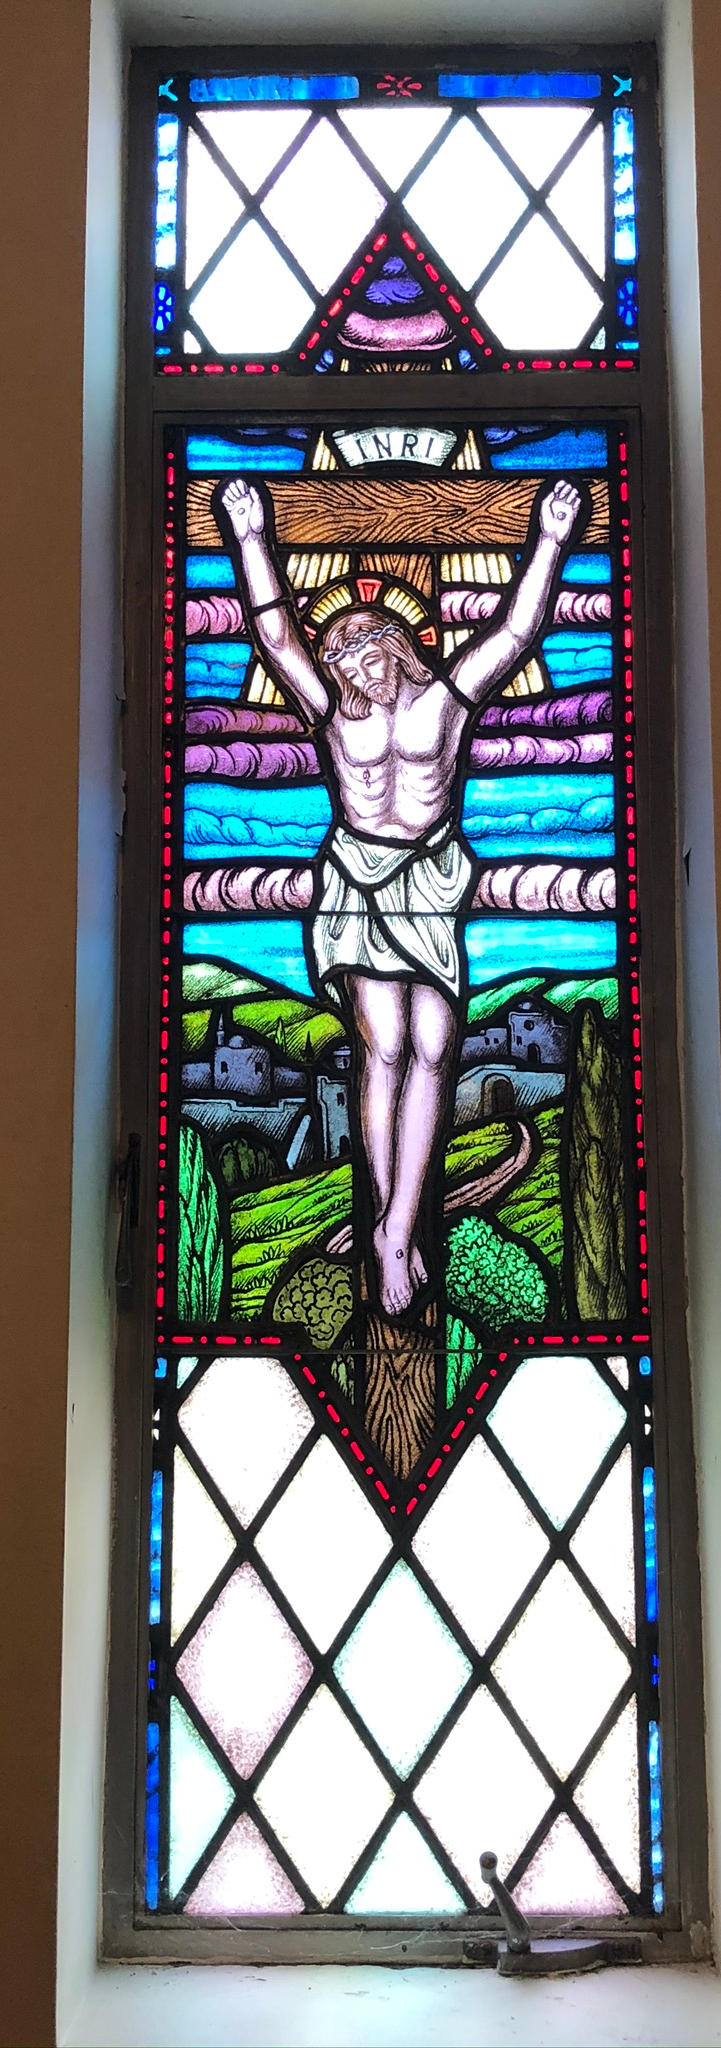 The Passion of Christ $9,000